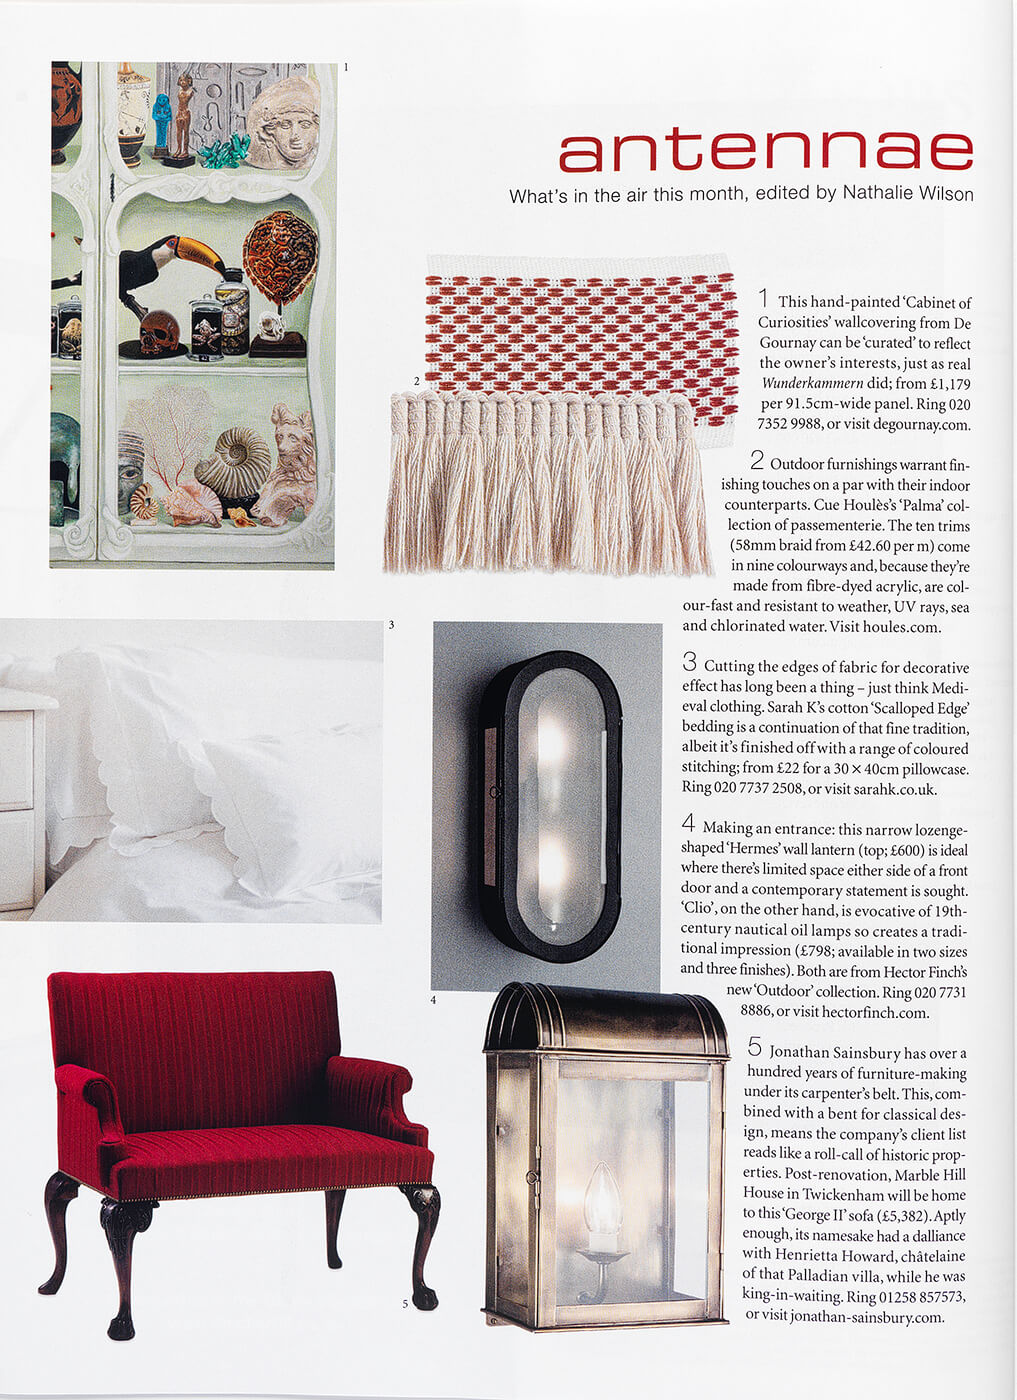 The World of Interiors Page 1 July 2020